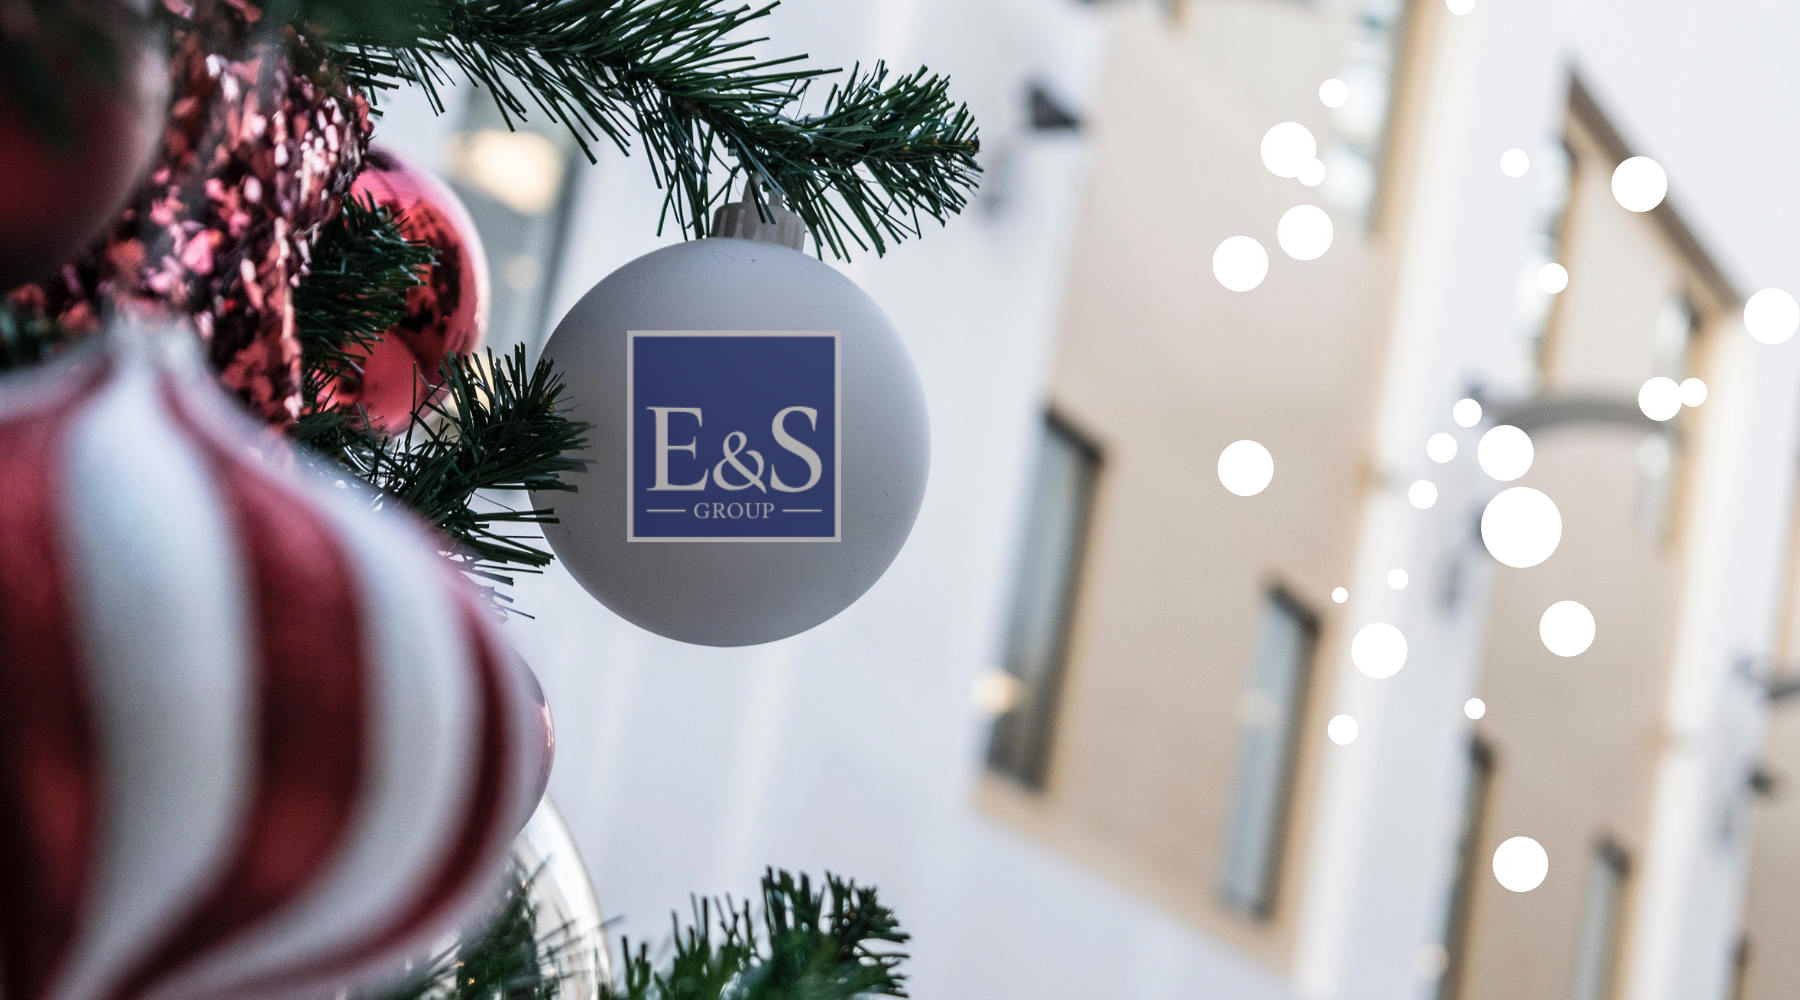 'It's the season to be Jolly' Happy Holiday from the E&S Team